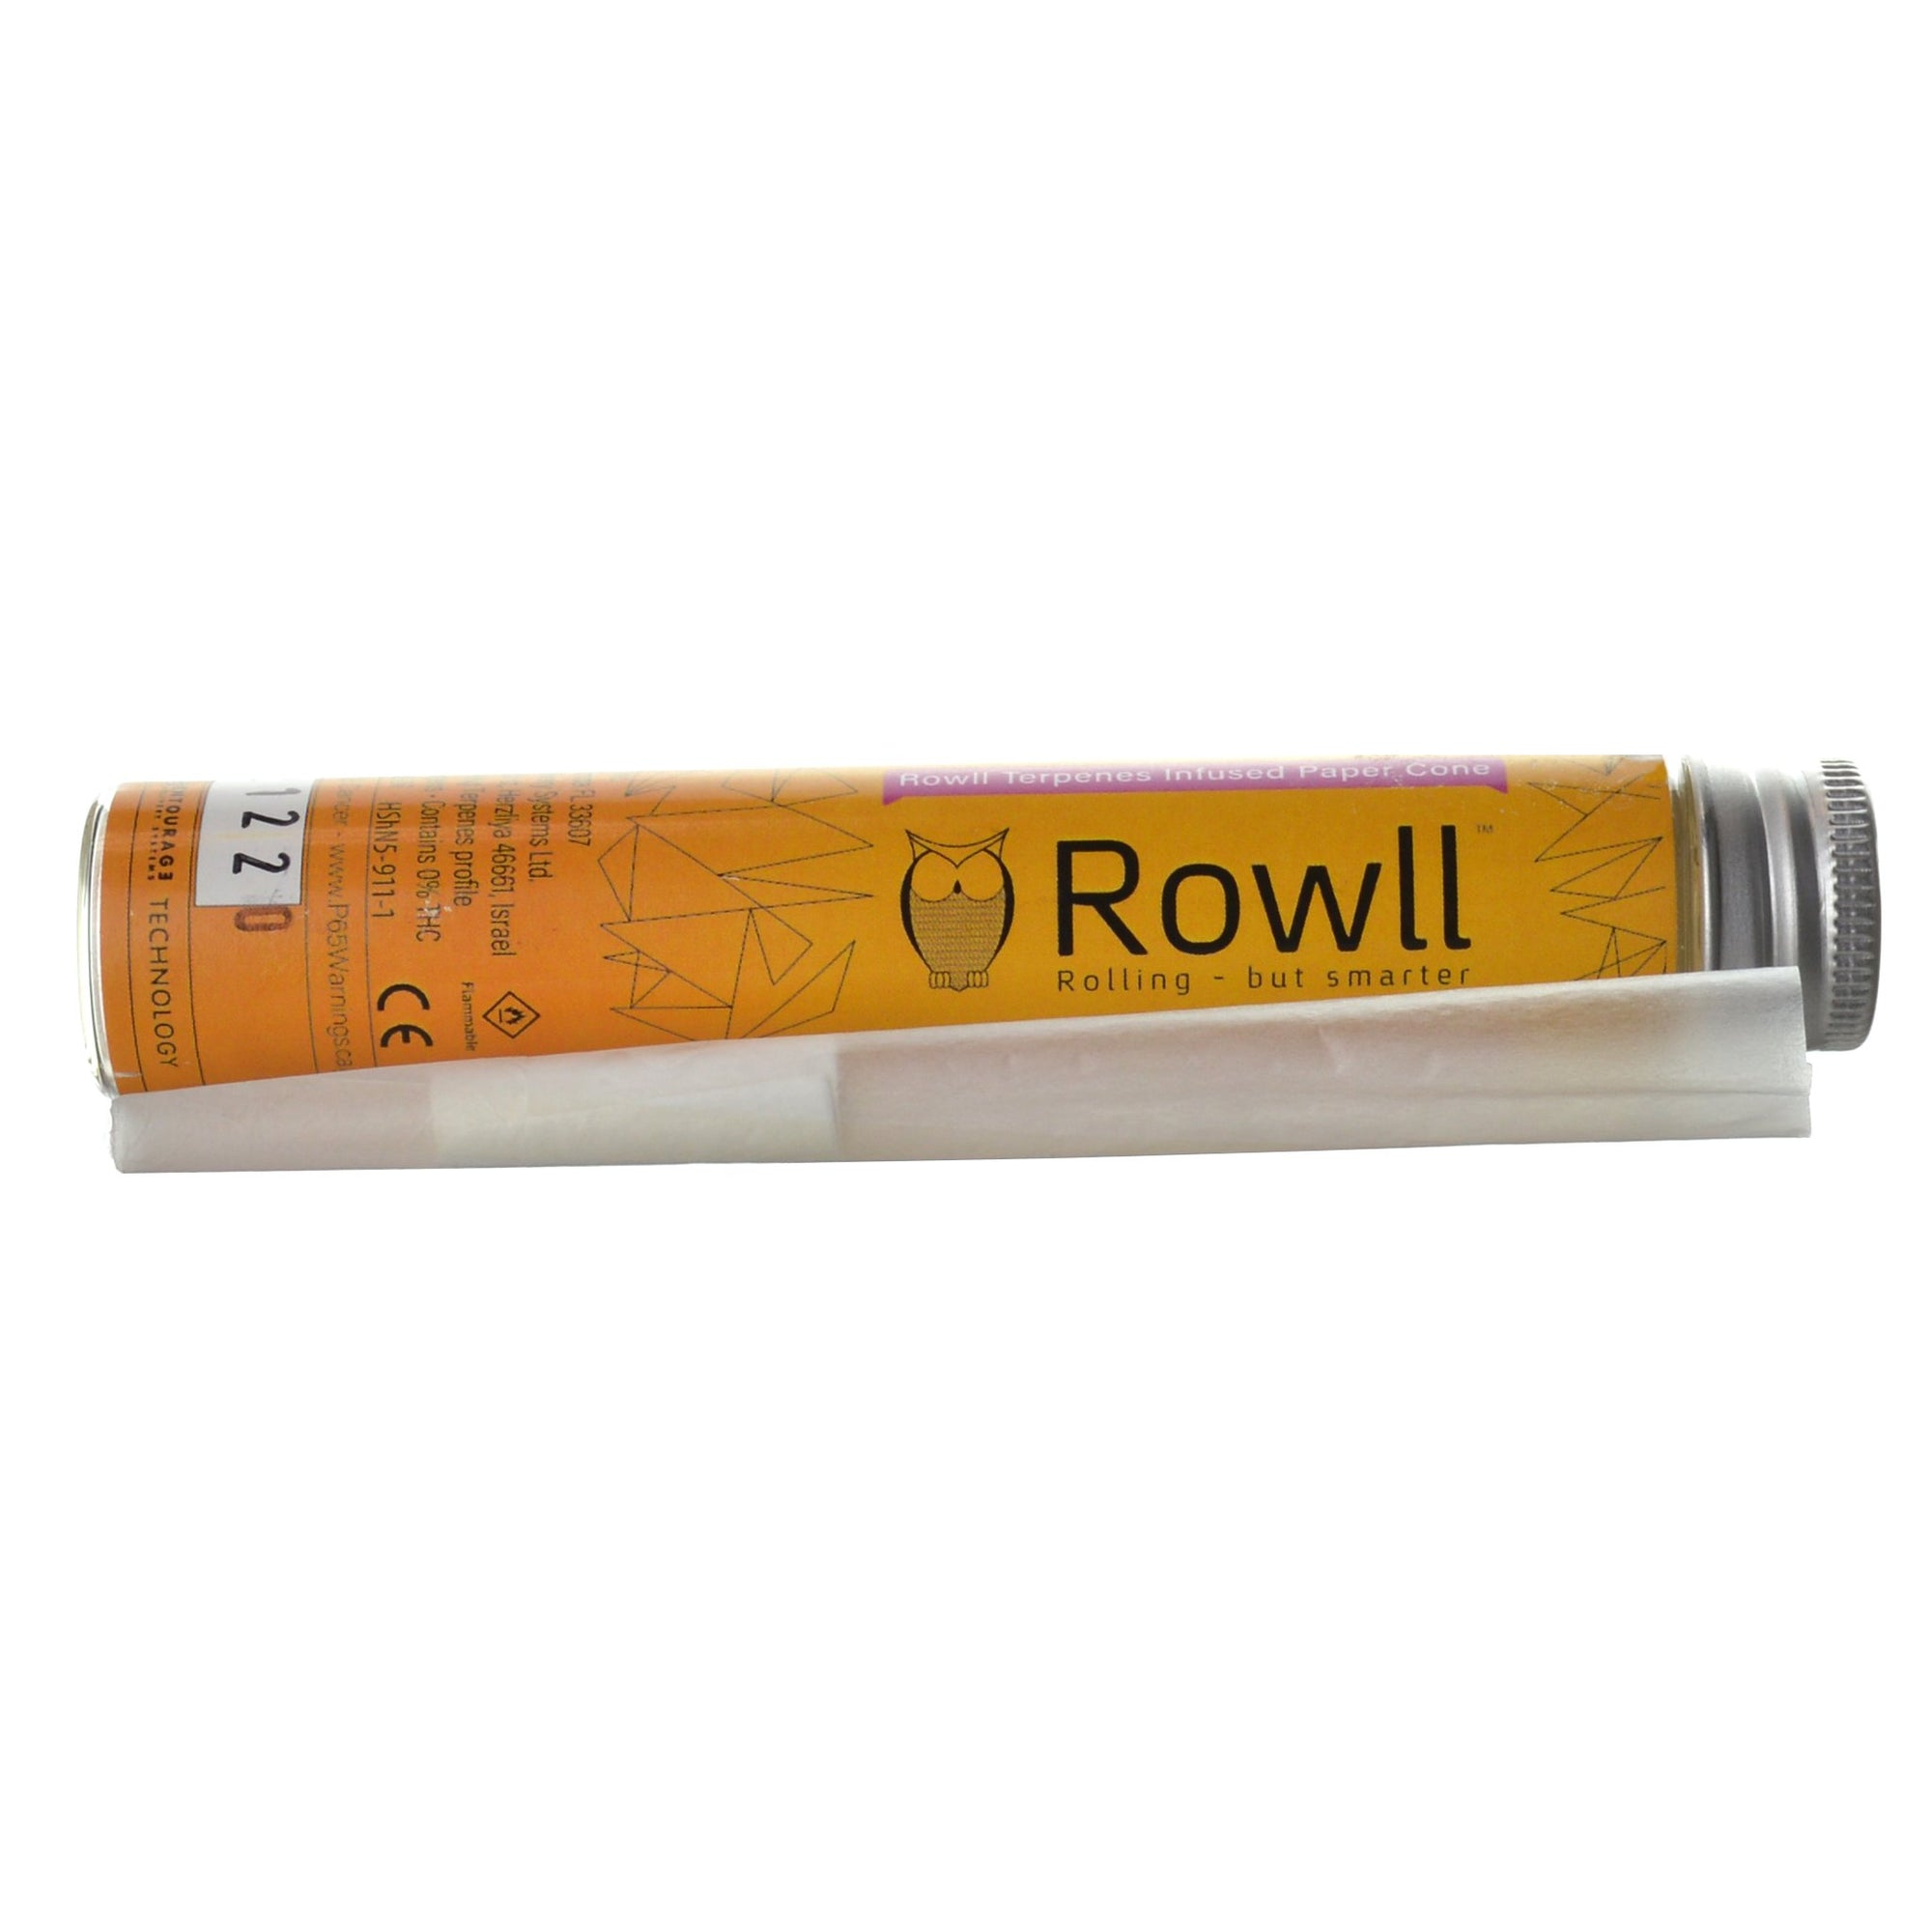 Rowll Terpenes Infused Pre-rolled Cone